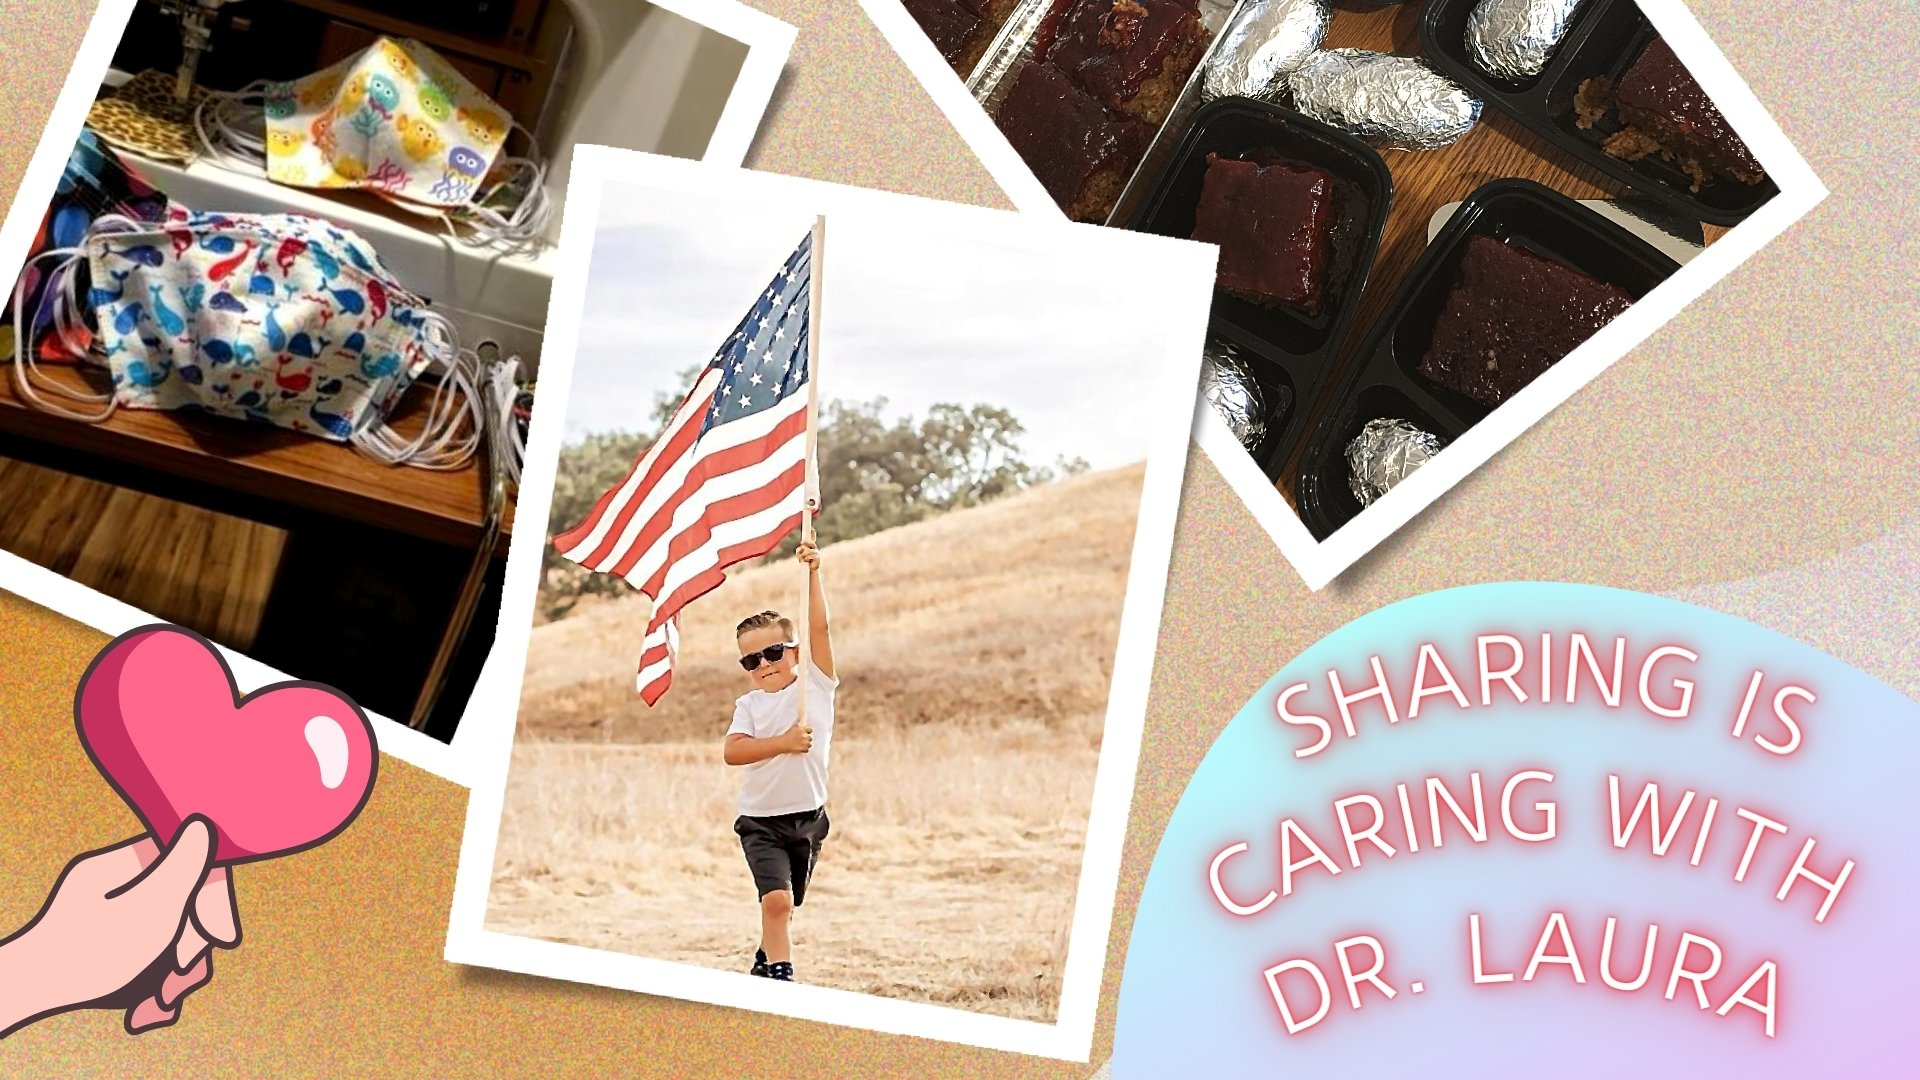 YouTube: Sharing Is Caring with Dr. Laura